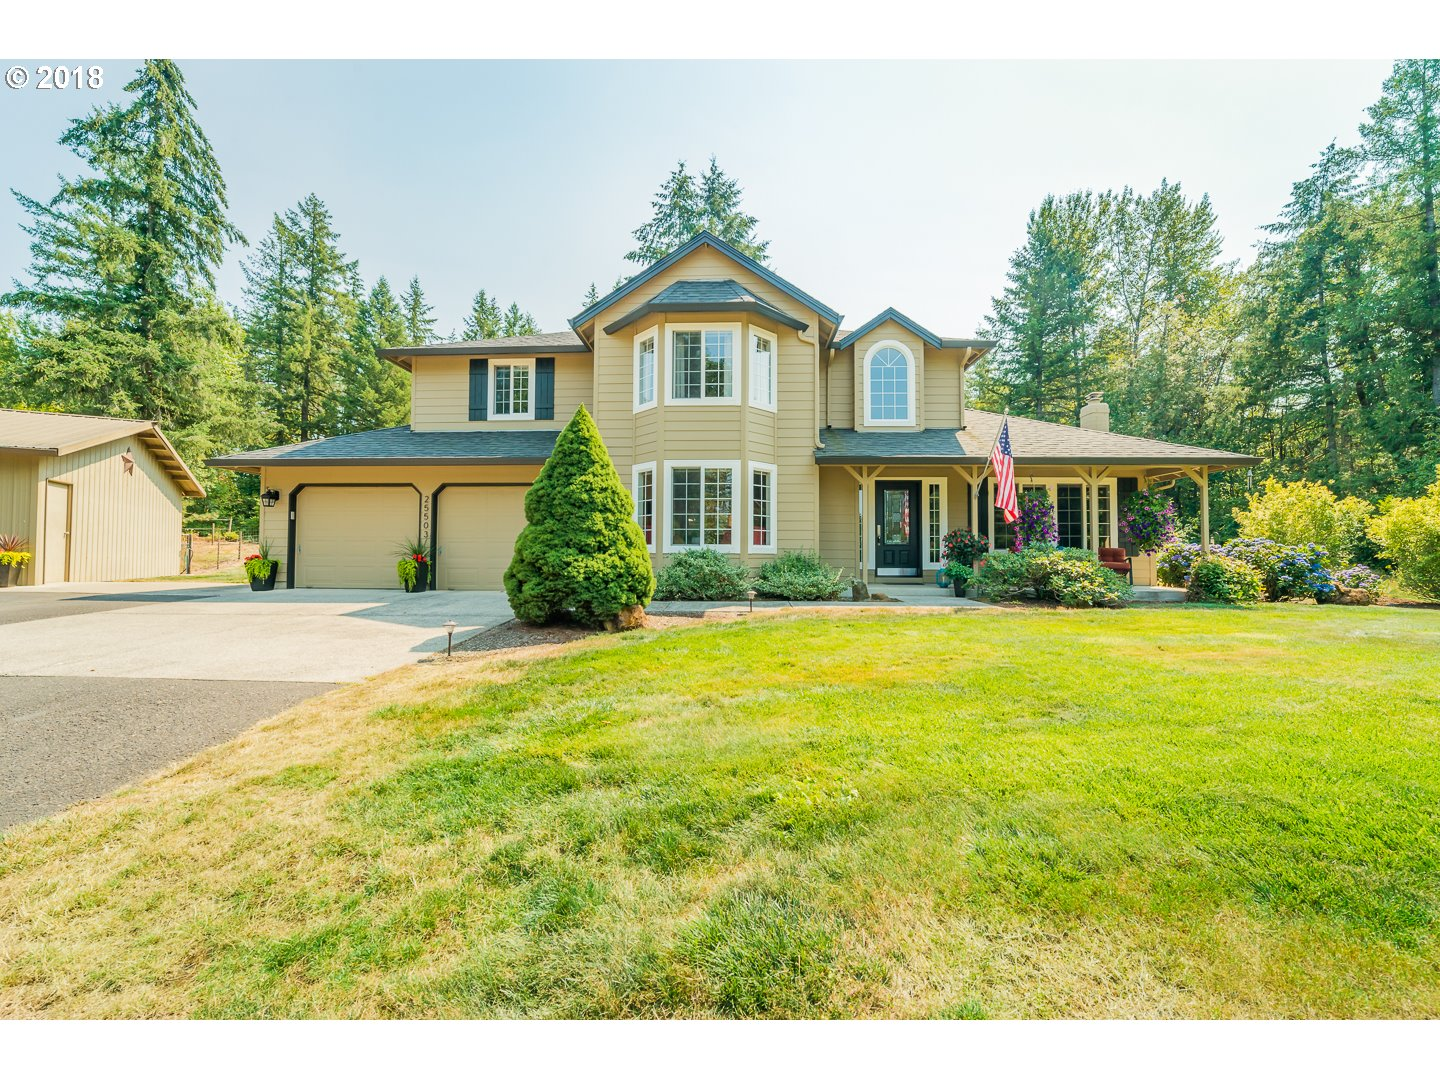 25503 NE 188TH CT Battle Ground, WA 98604 - MLS #: 18678142